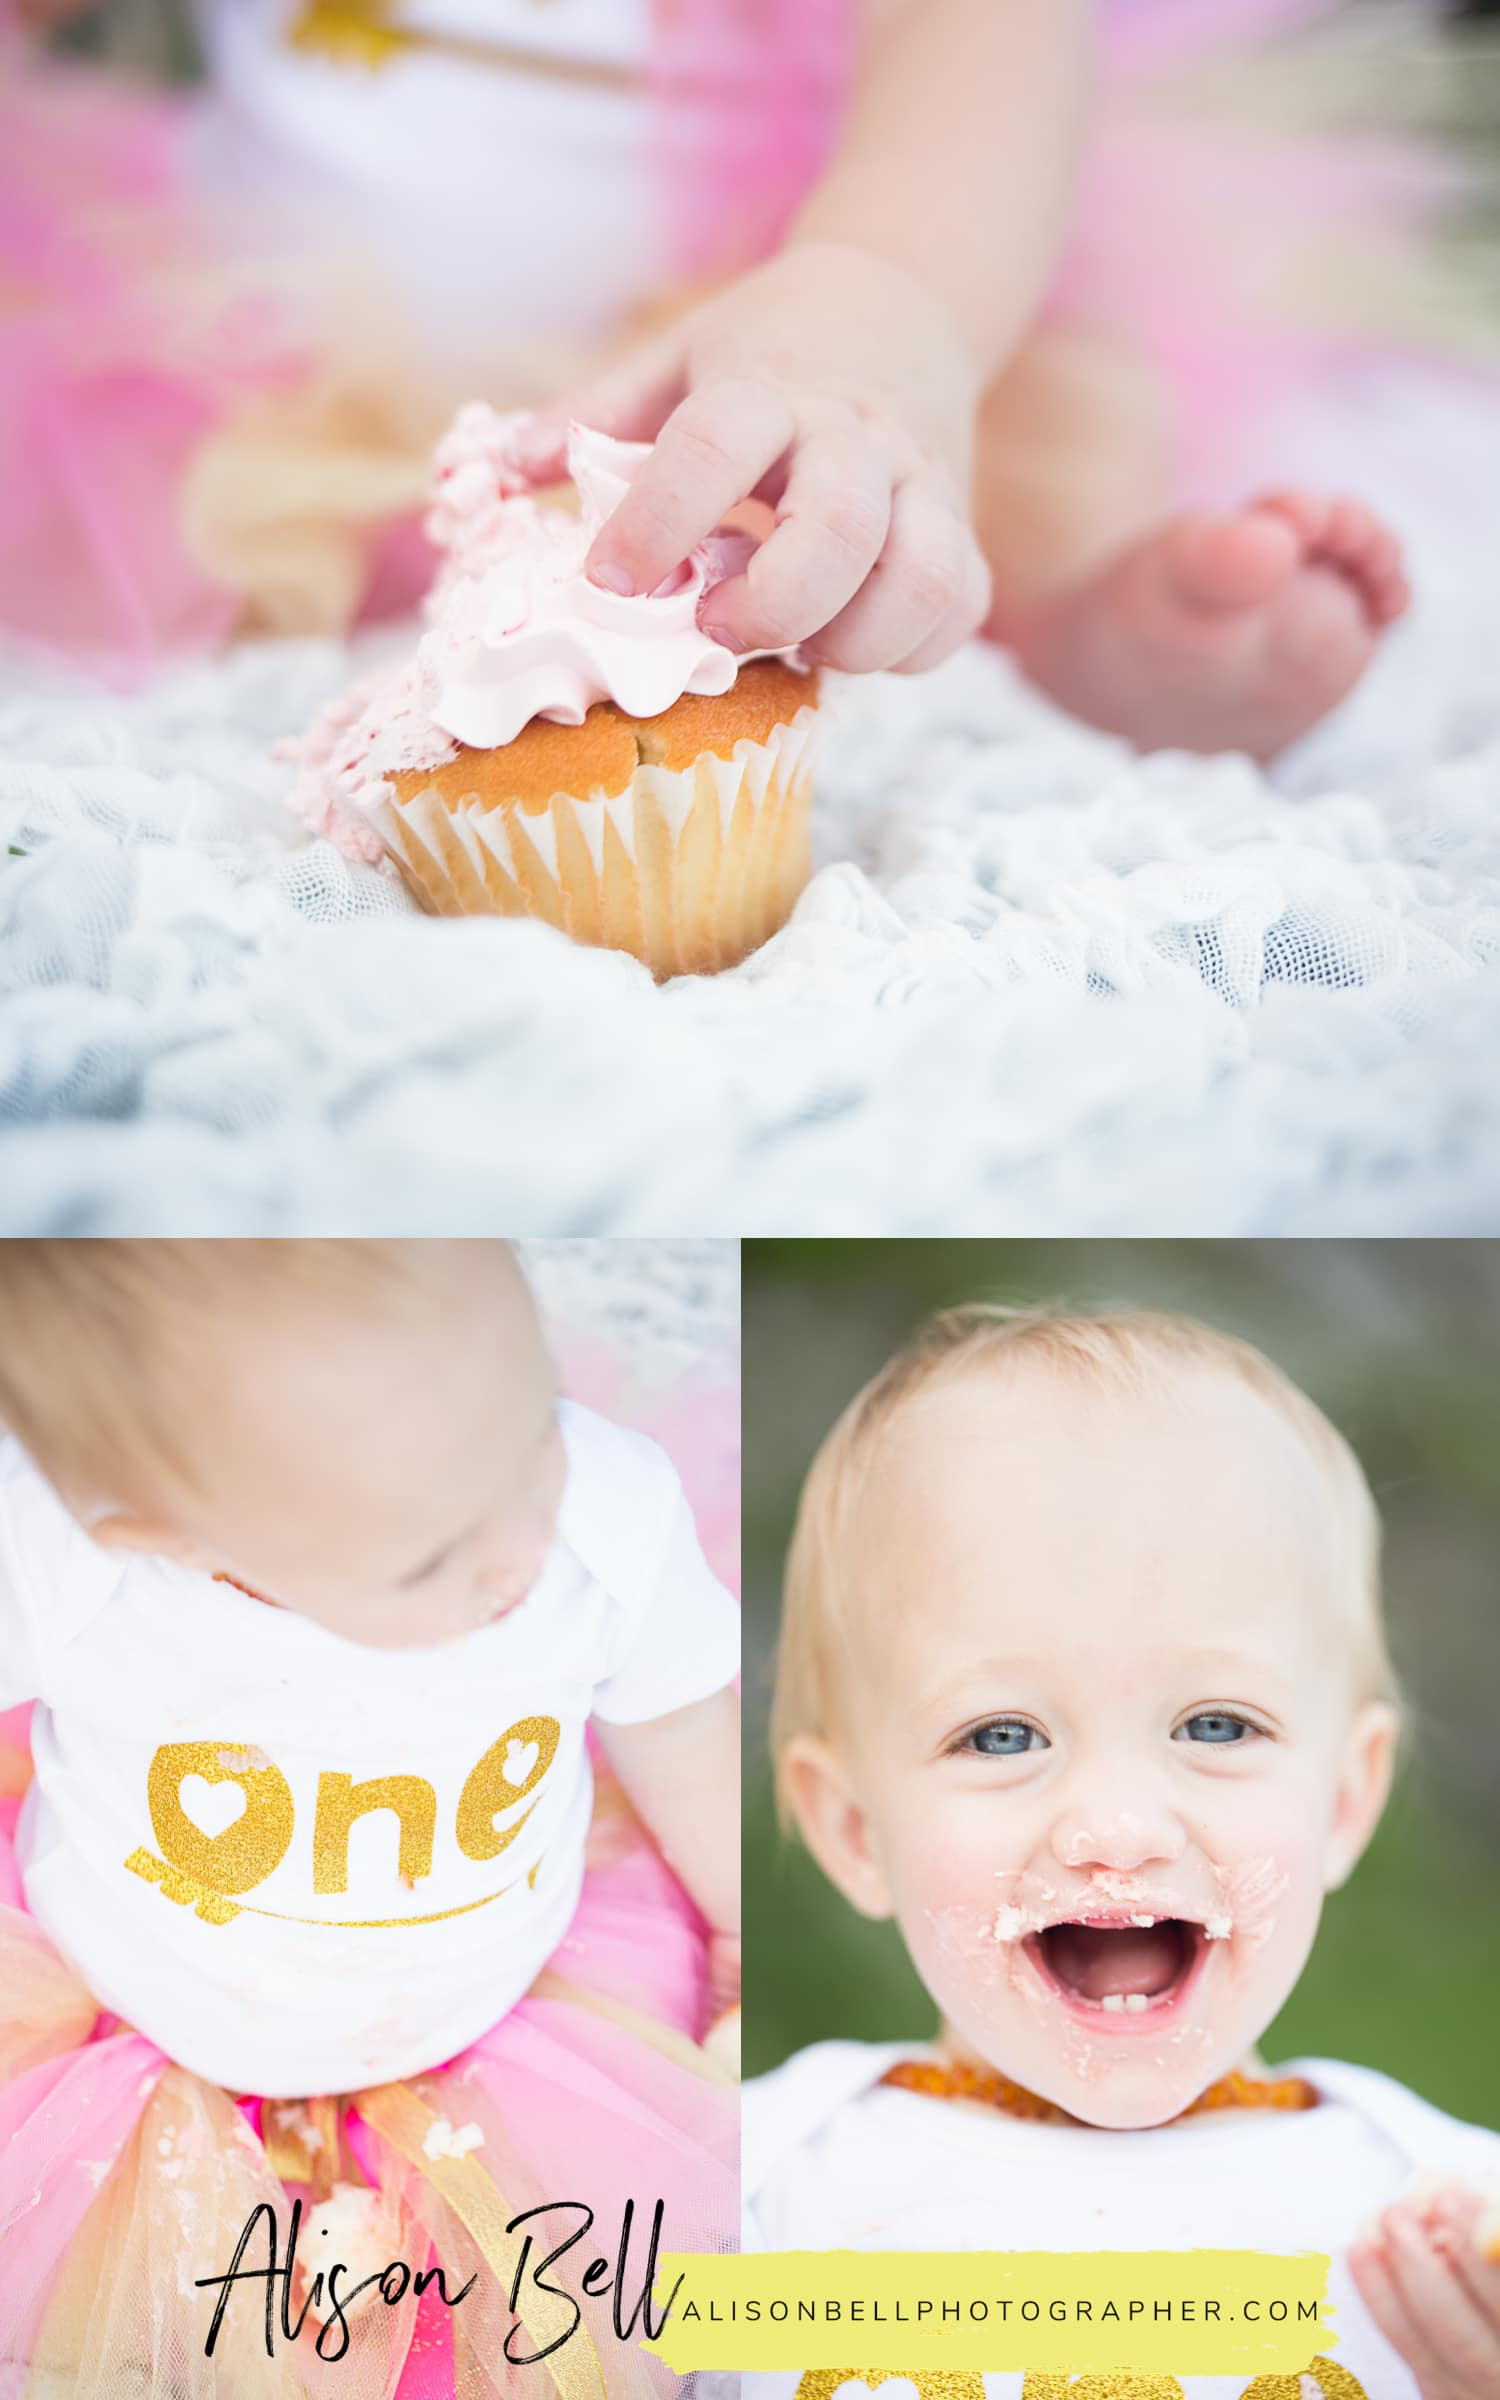 One year birthday photo session and cake smash with a cupcake in Okinawa Japan at Zakimi Castle by Alison Bell, Photographer #alisonbellphotog alisonbellphotographer.com